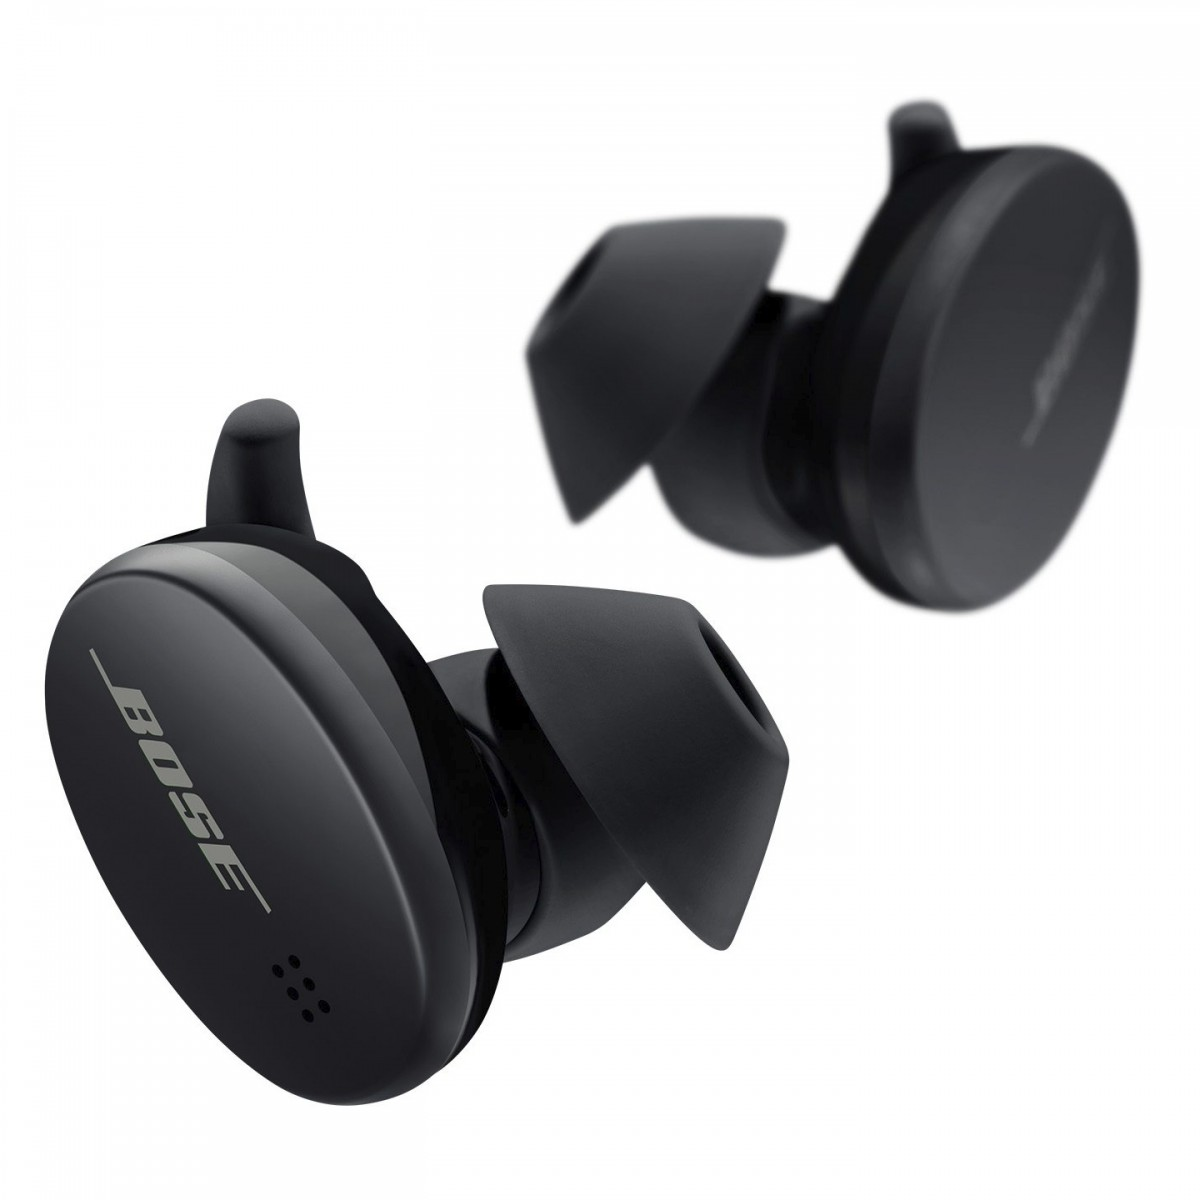 Bose launches QuietComfort Earbuds, Sport Earbuds and three new Frames